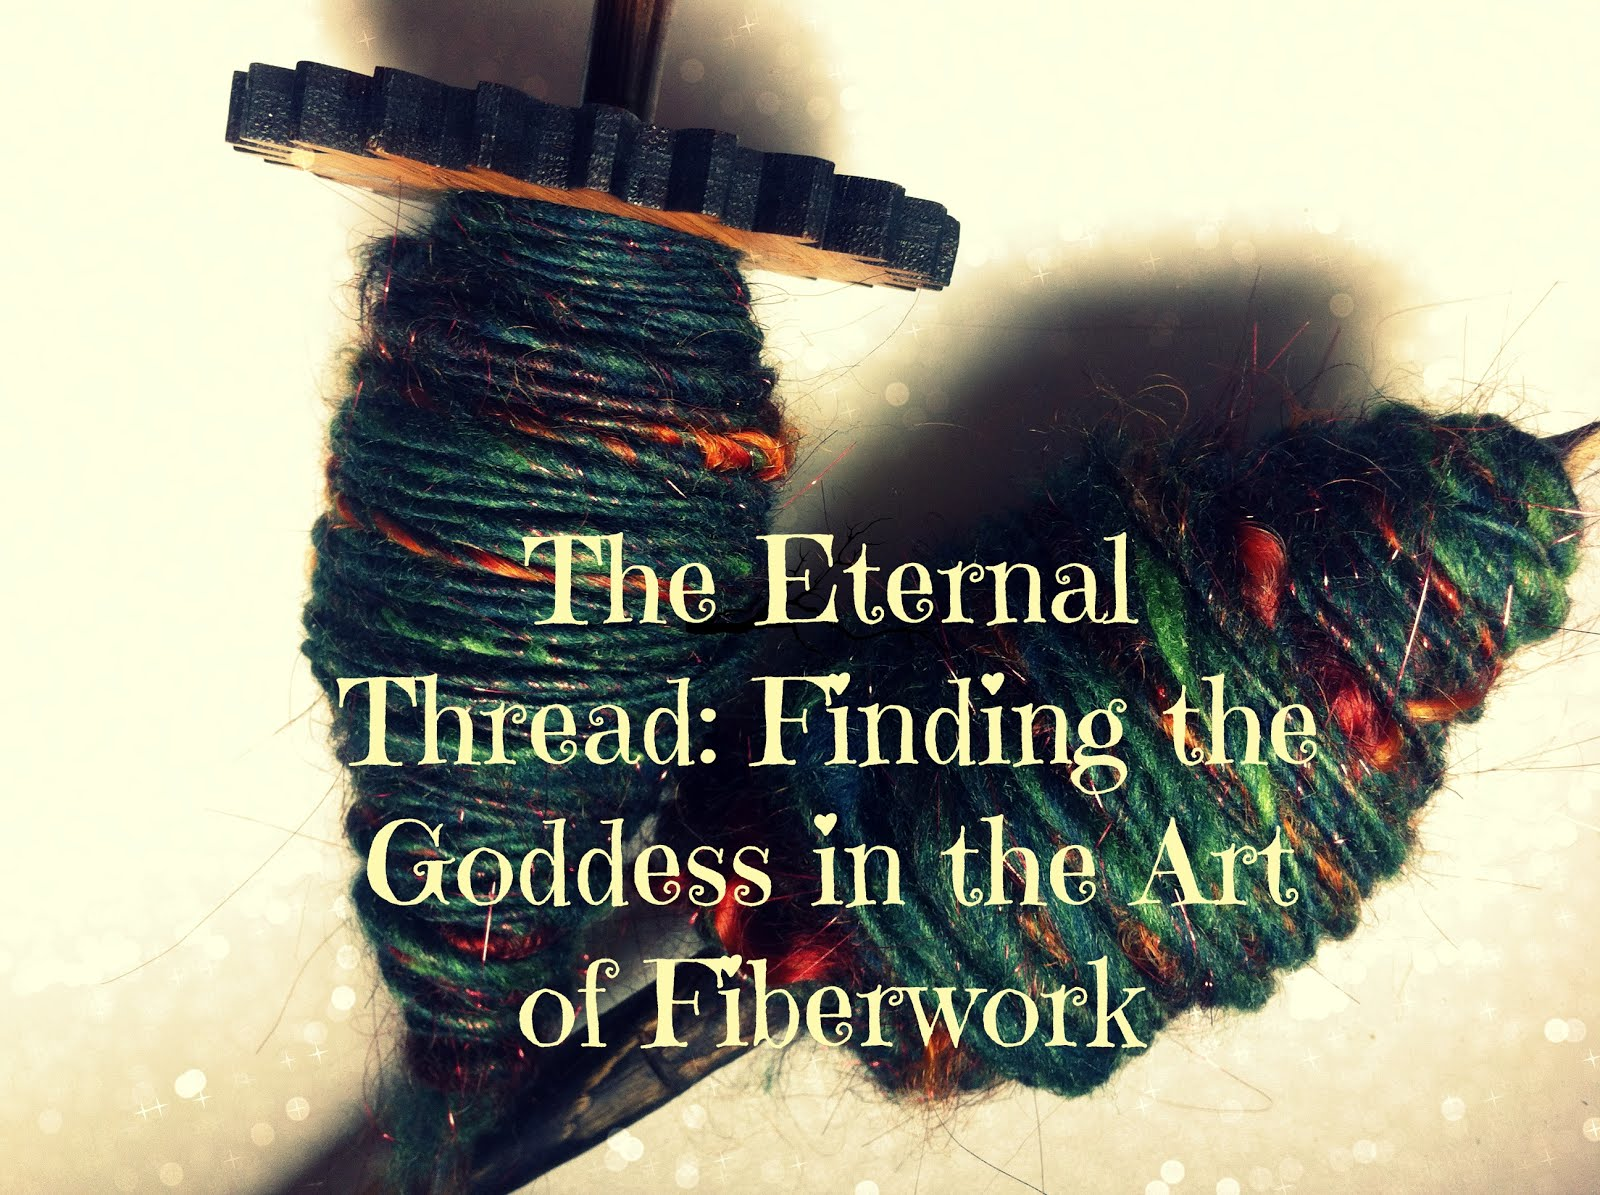 The Eternal Thread